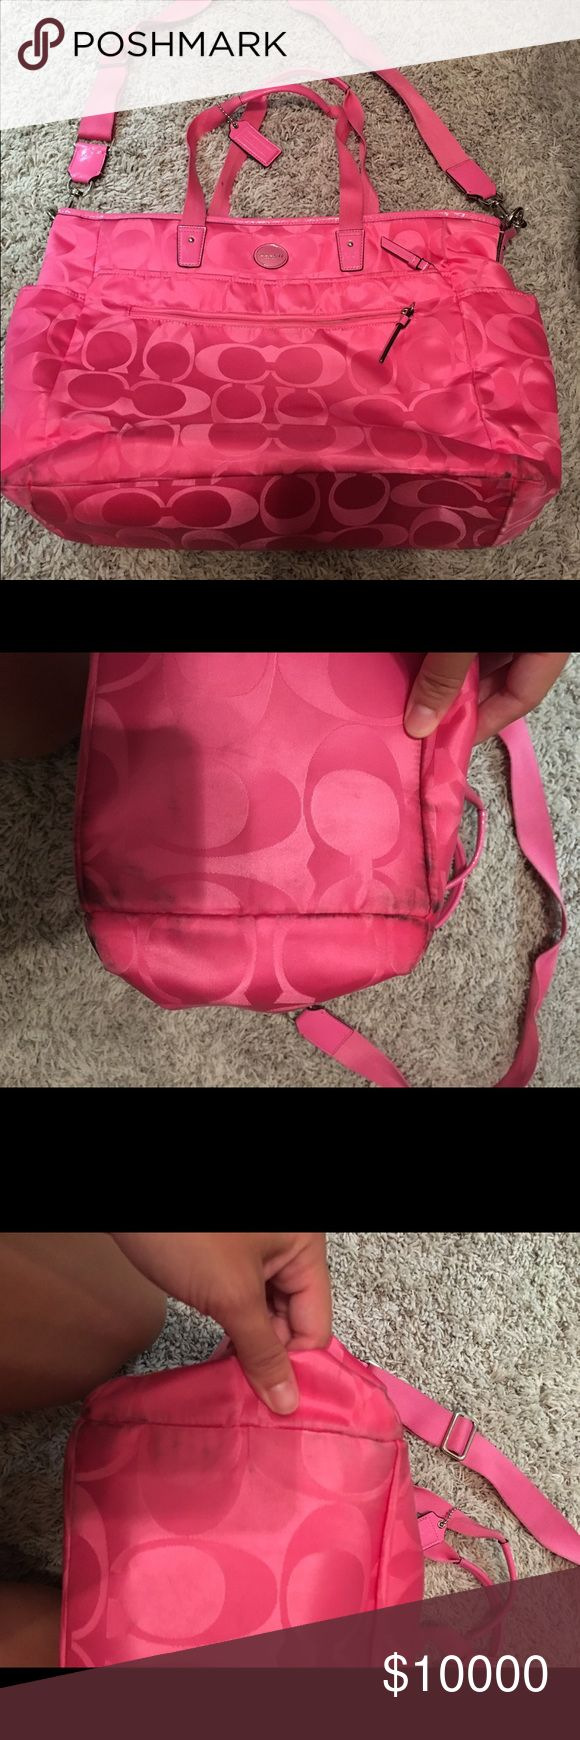 Pink coach diaper bag This bag is in great condition. Authentic pink coach diaper bag. There are the marks on the bag, on the bottom and a little bit of a split on the handles but still in really good condition. Coach Bags Baby Bags